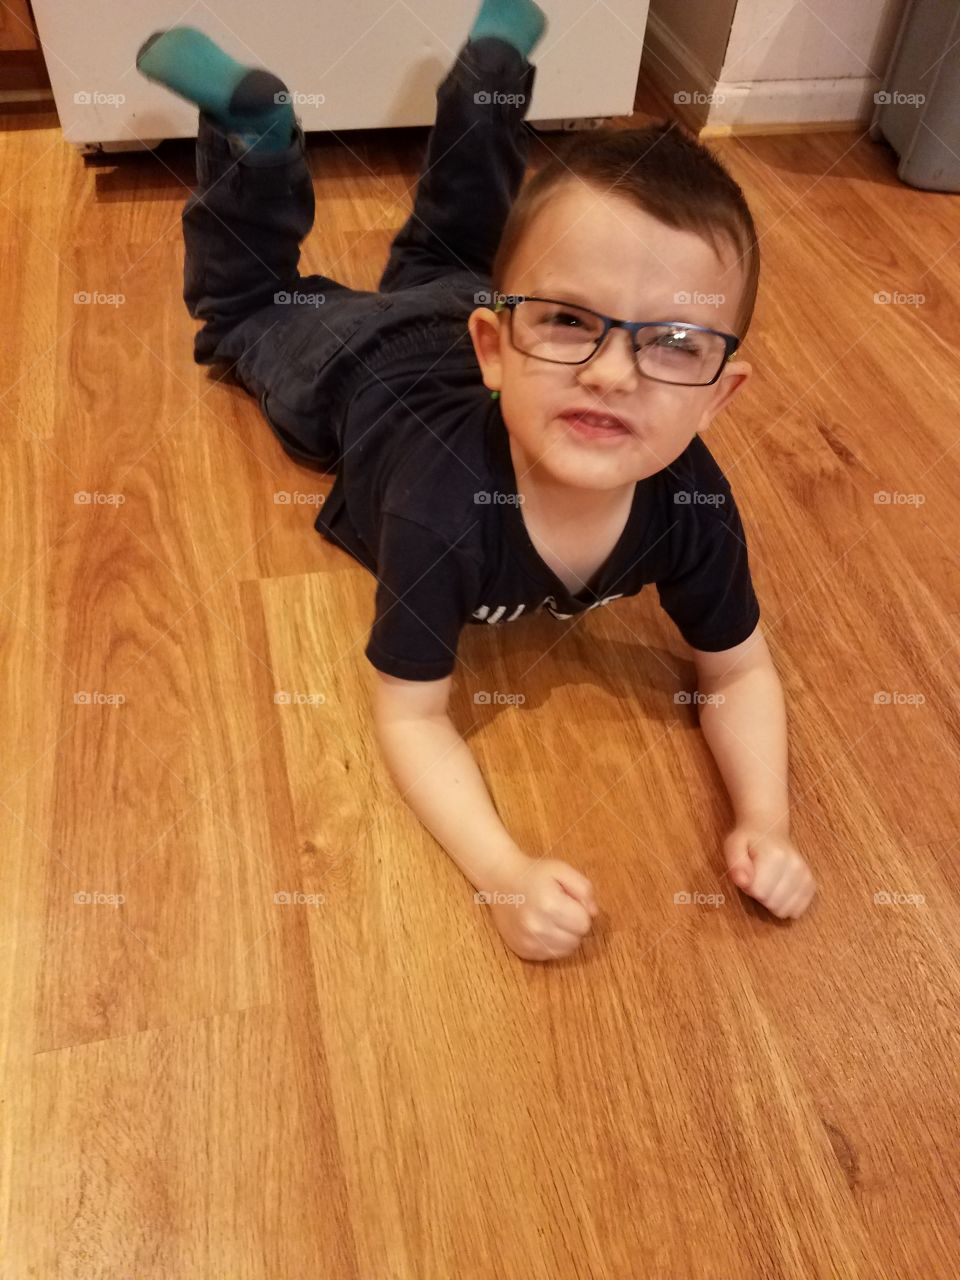 Little boy lying on floor with spectacles